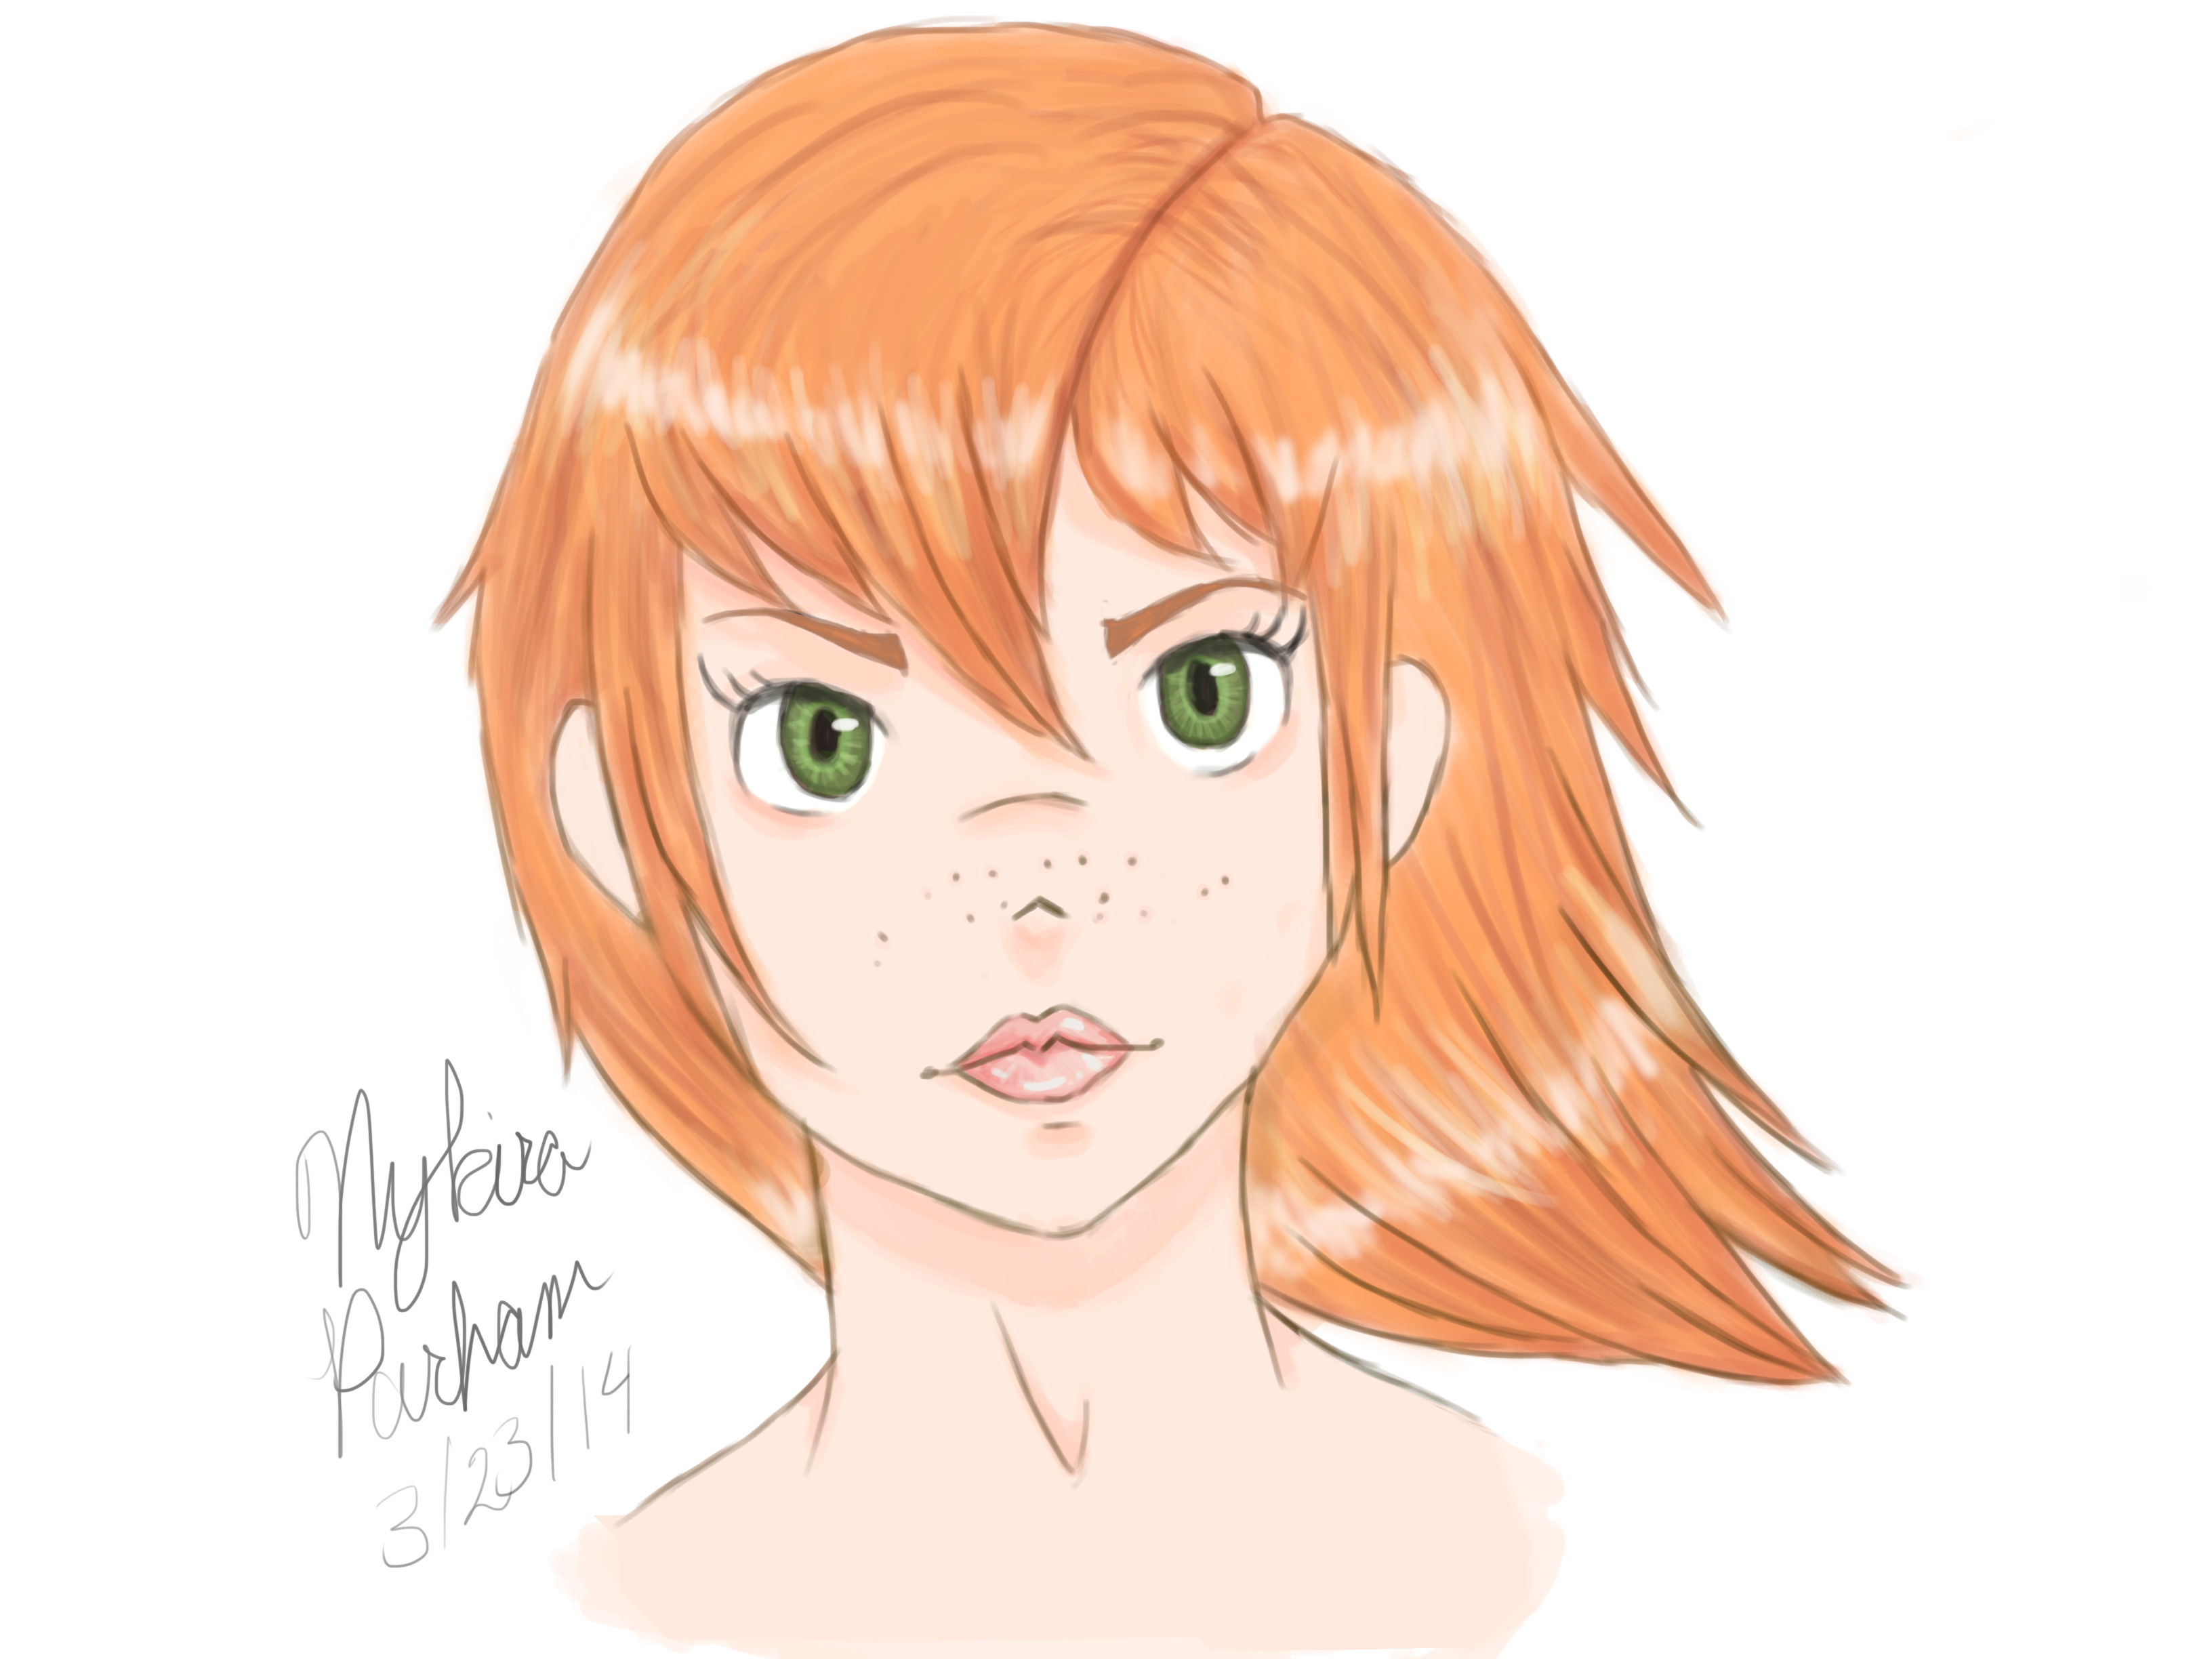 Anime girl with freckles